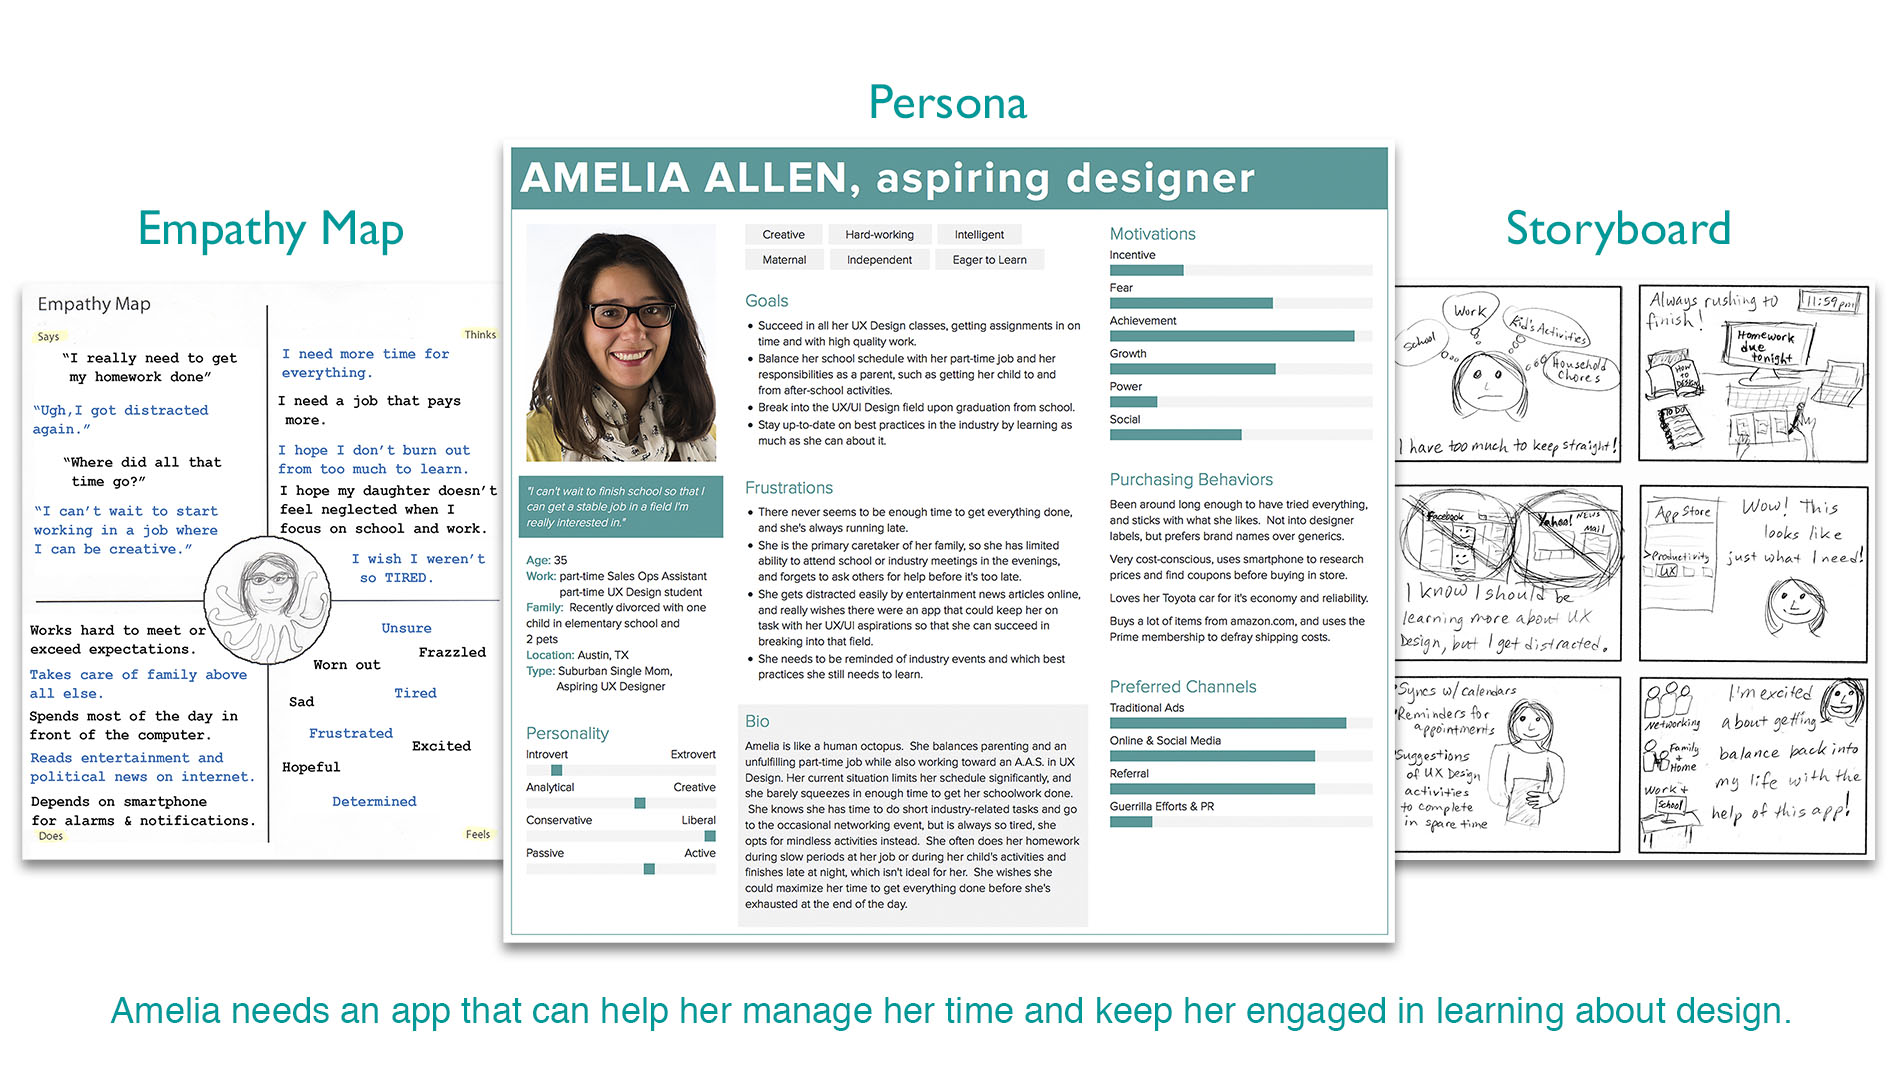 UX-101 Empathy Map, Persona, Storyboard